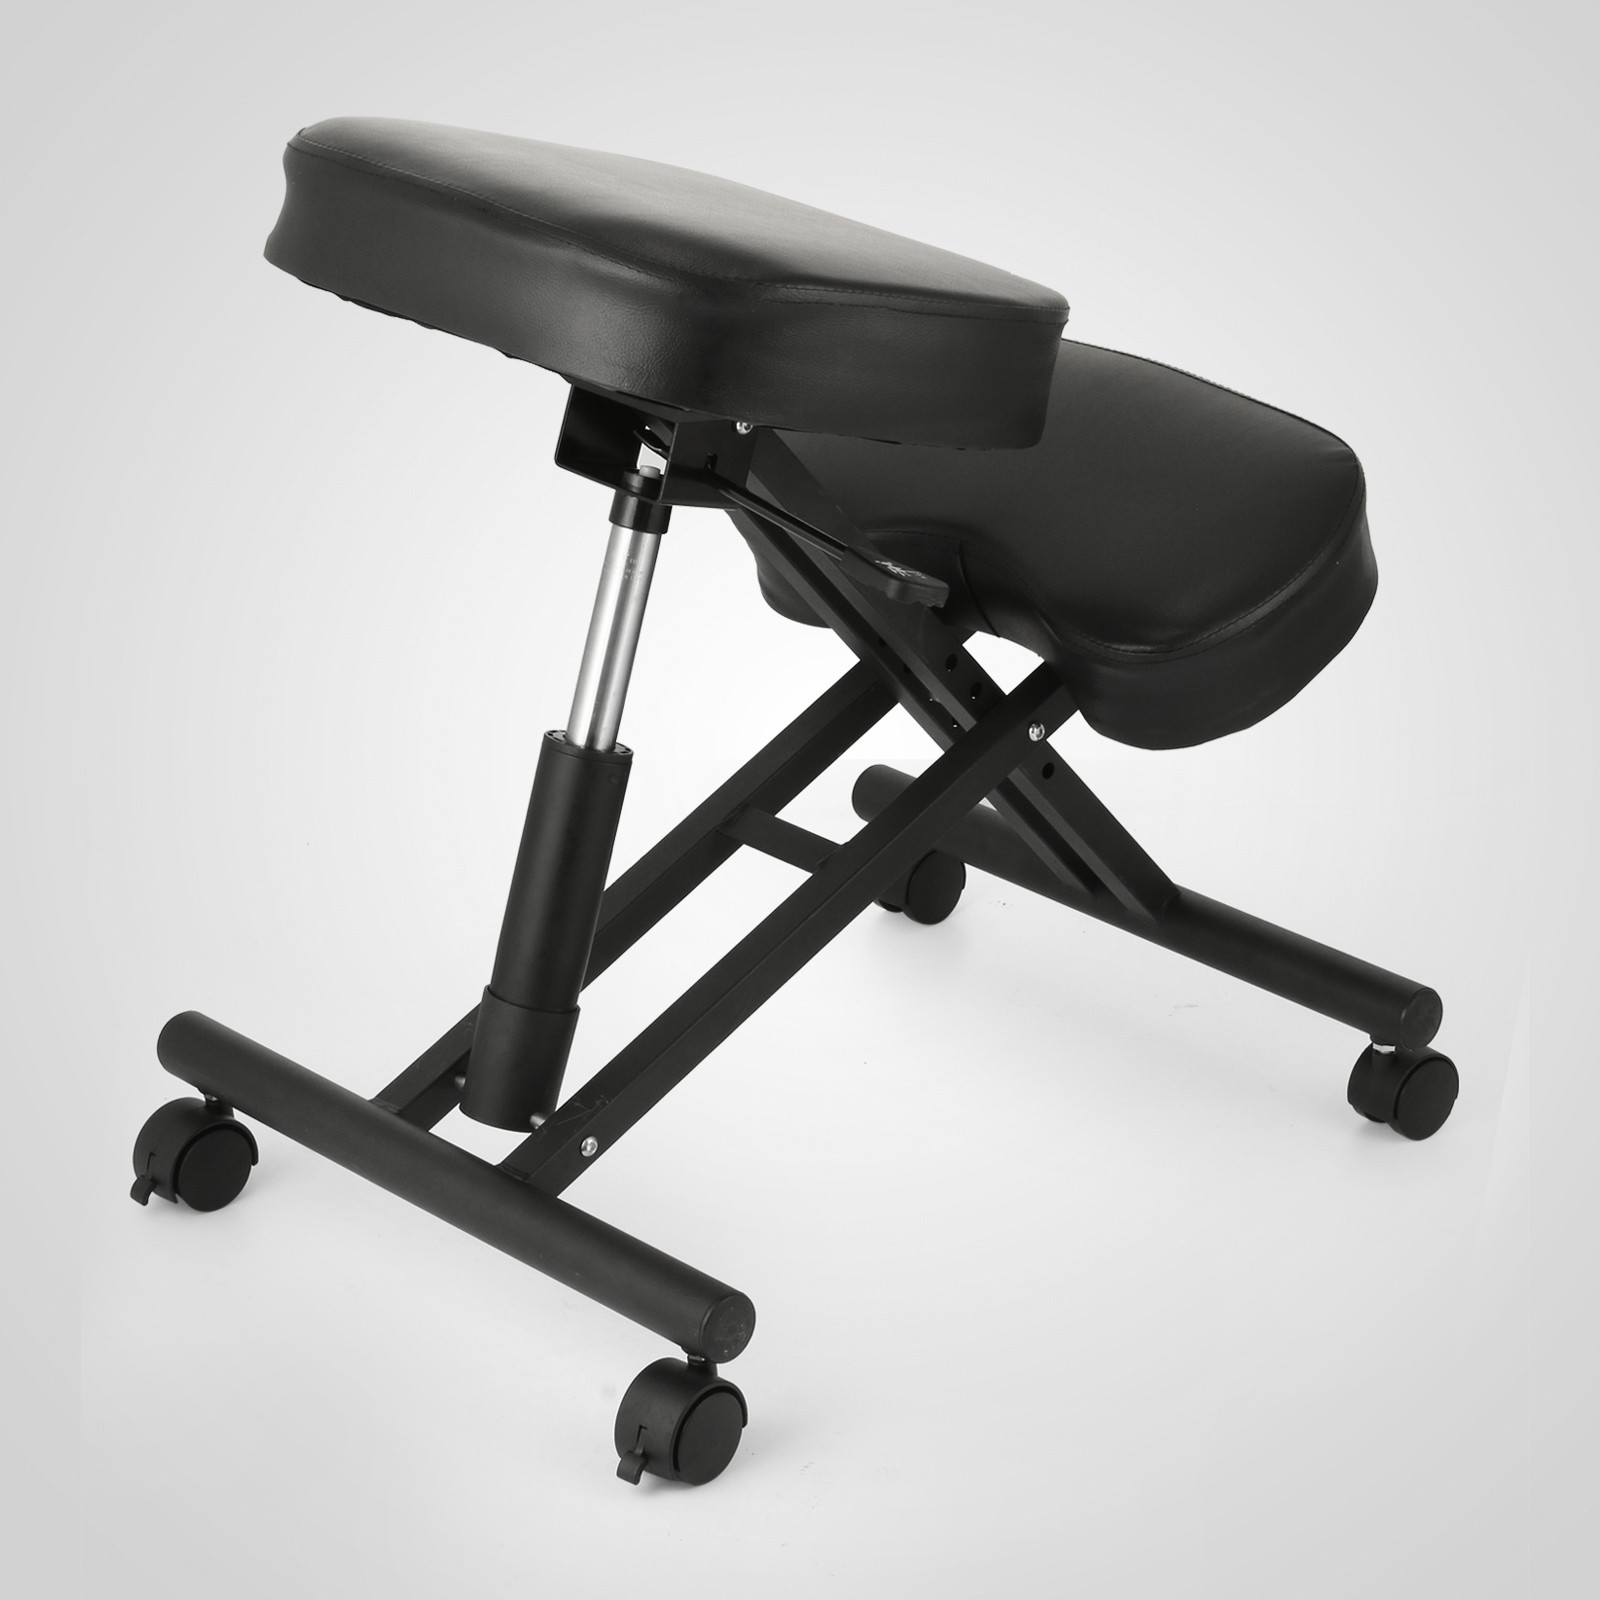 Ergonomic Chair Kneeling Ergonomic Kneeling Chair Bentwood Steel Frame Stress